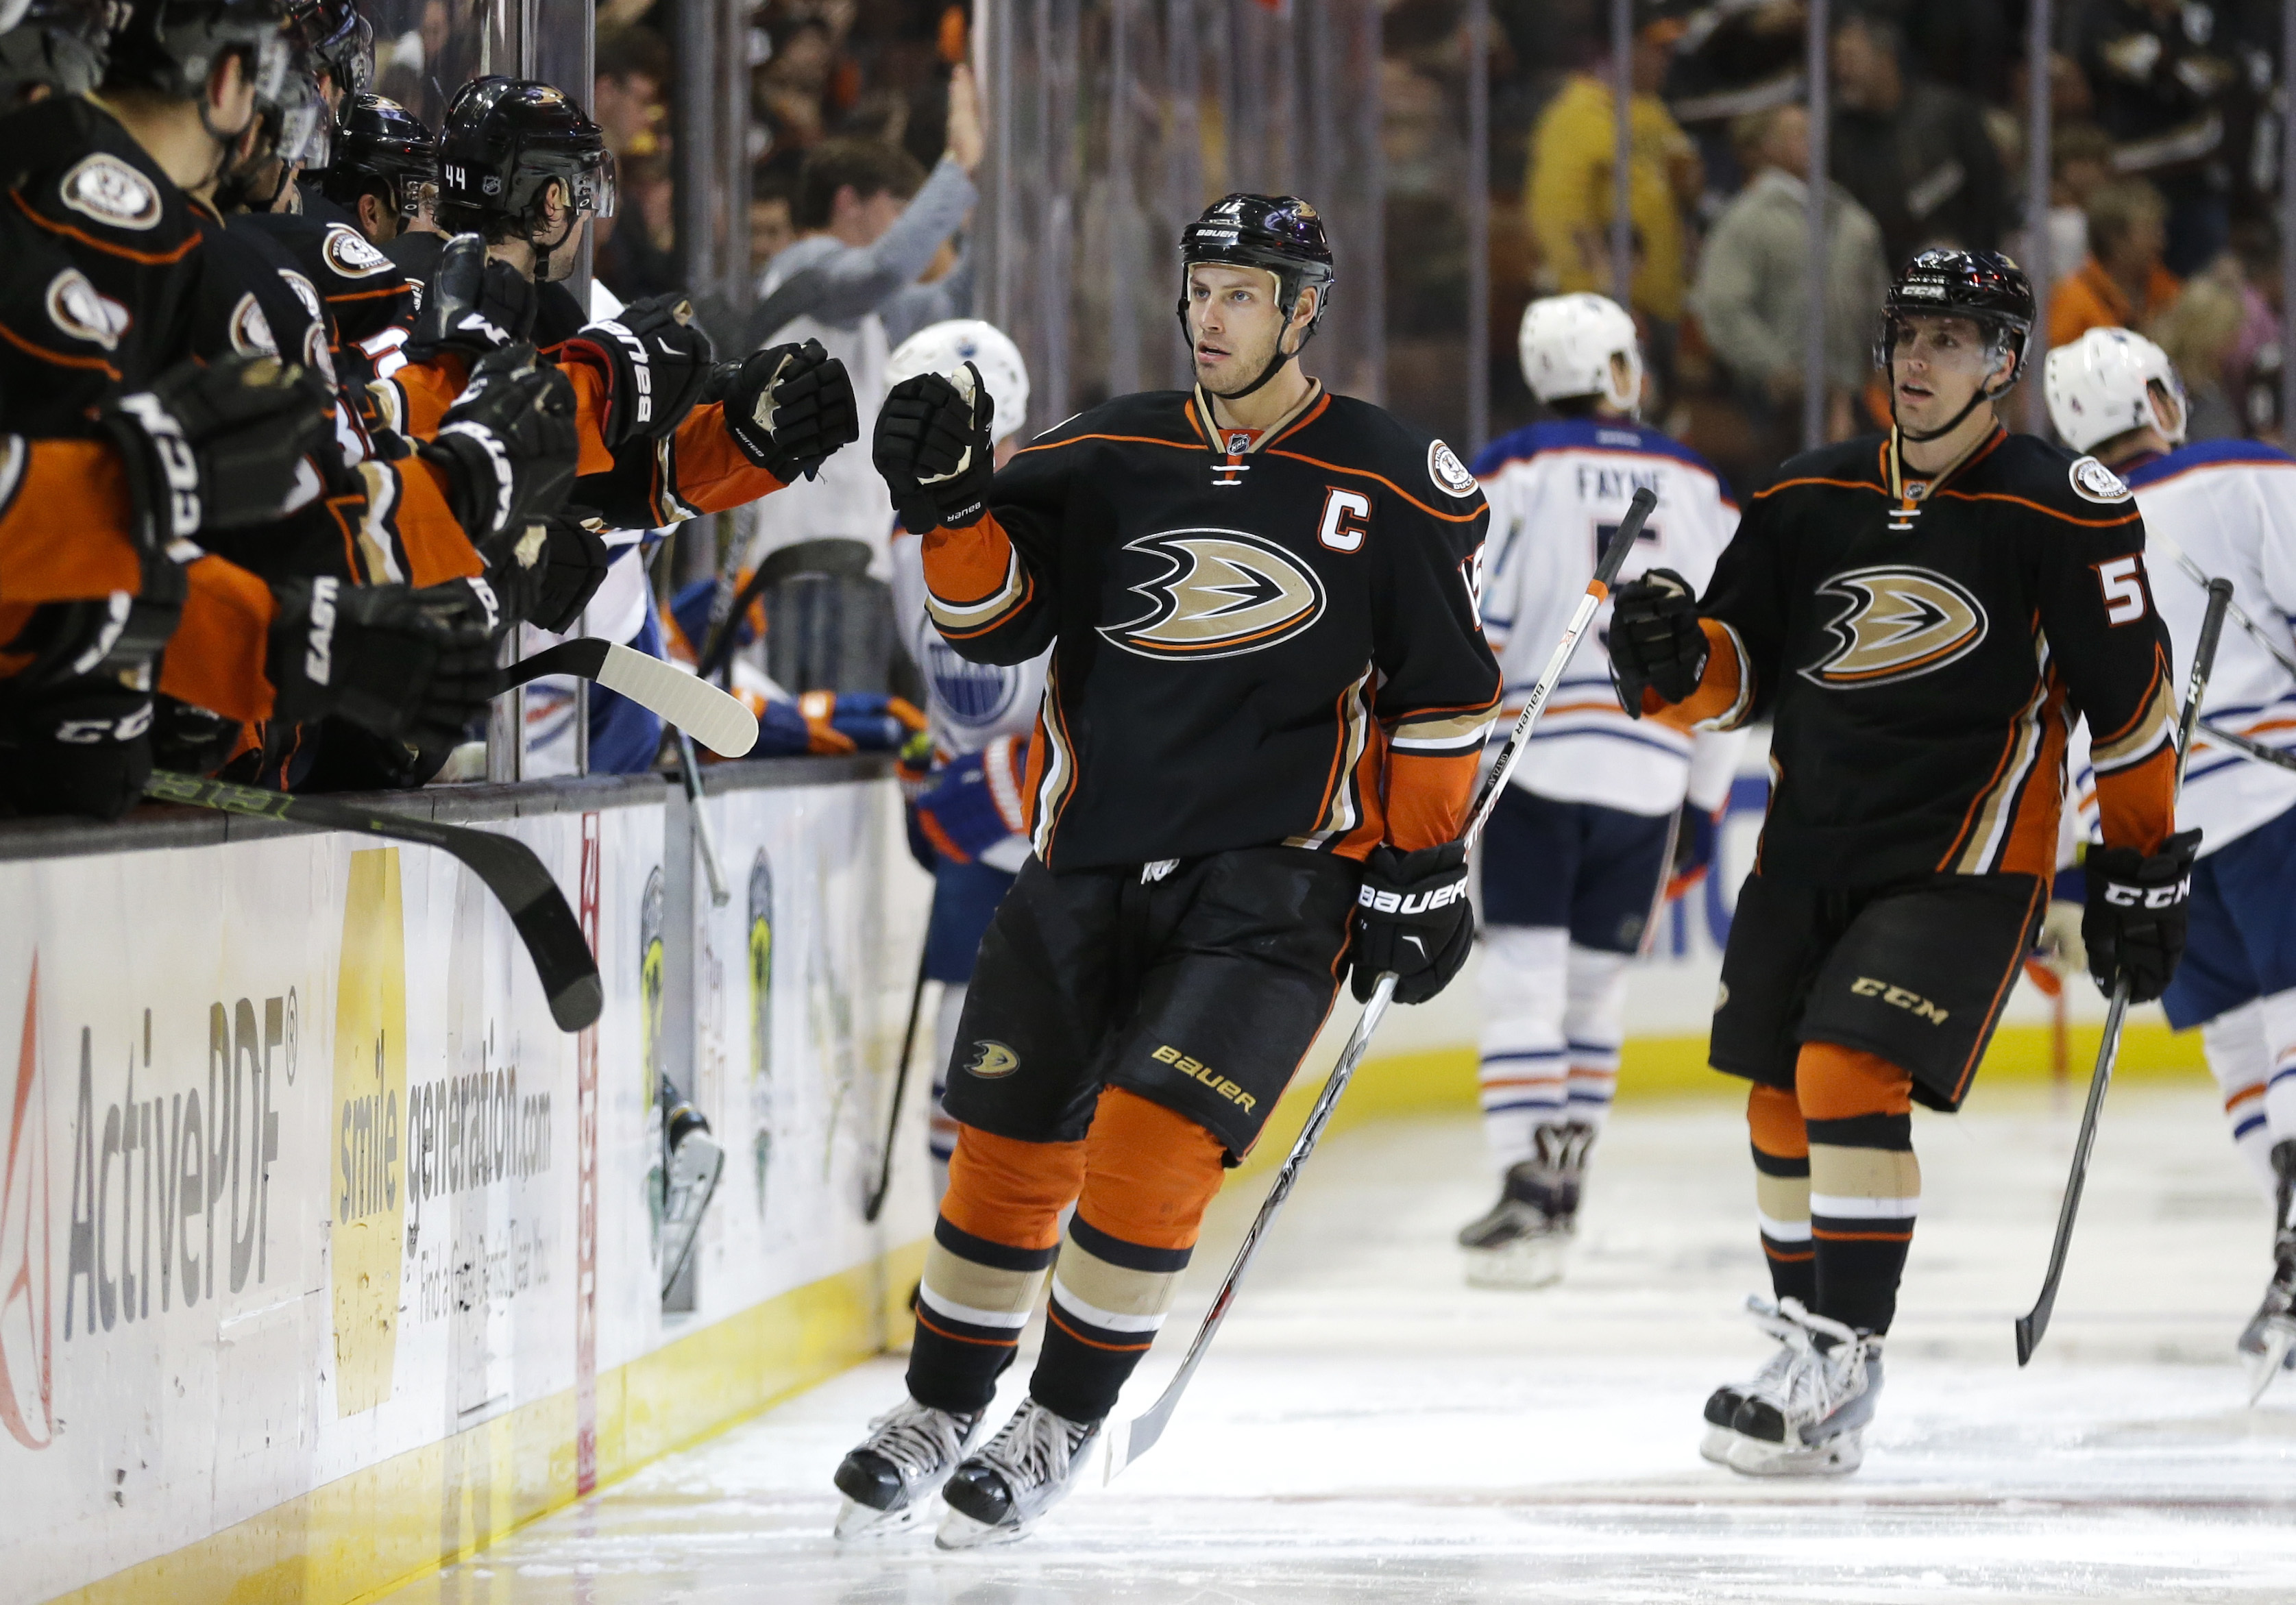 Anaheim Ducks' Ryan Getzlaf, center, celebrates his goal with teammates during the third period of an NHL hockey game against the Edmonton Oilers on Friday, Feb. 26, 2016, in Anaheim, Calif. The Ducks won 2-1 in overtime. (AP Photo/Jae C. Hong)